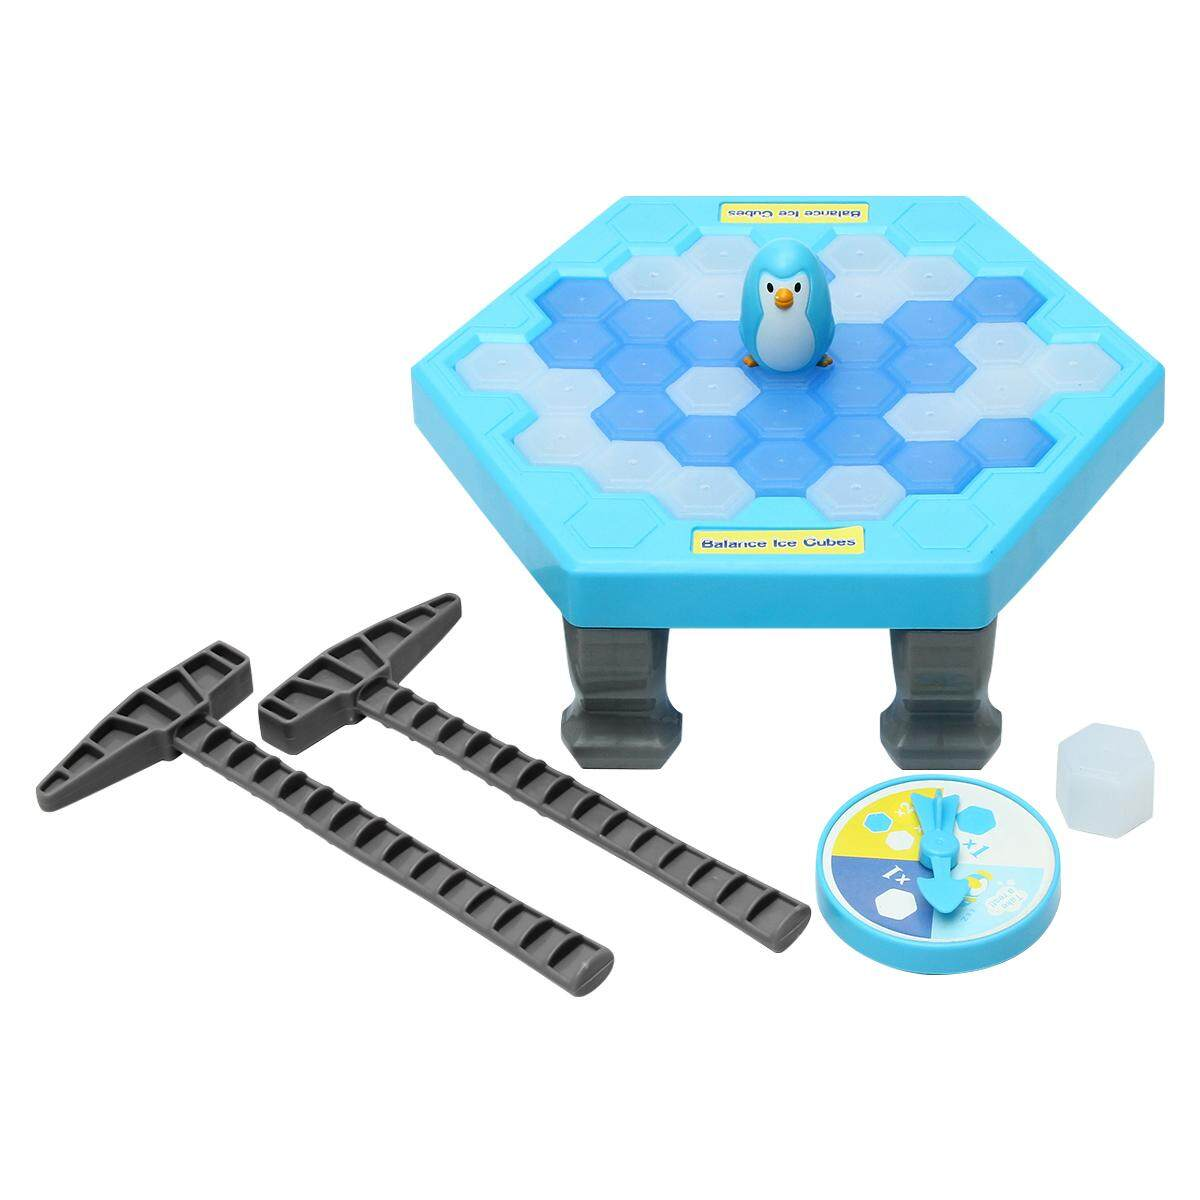 Funtok Save Penguin Ice Kids Puzzle Game Break Ice Block Hammer Trap Party Toy Pretend Icebreaker By Channy.